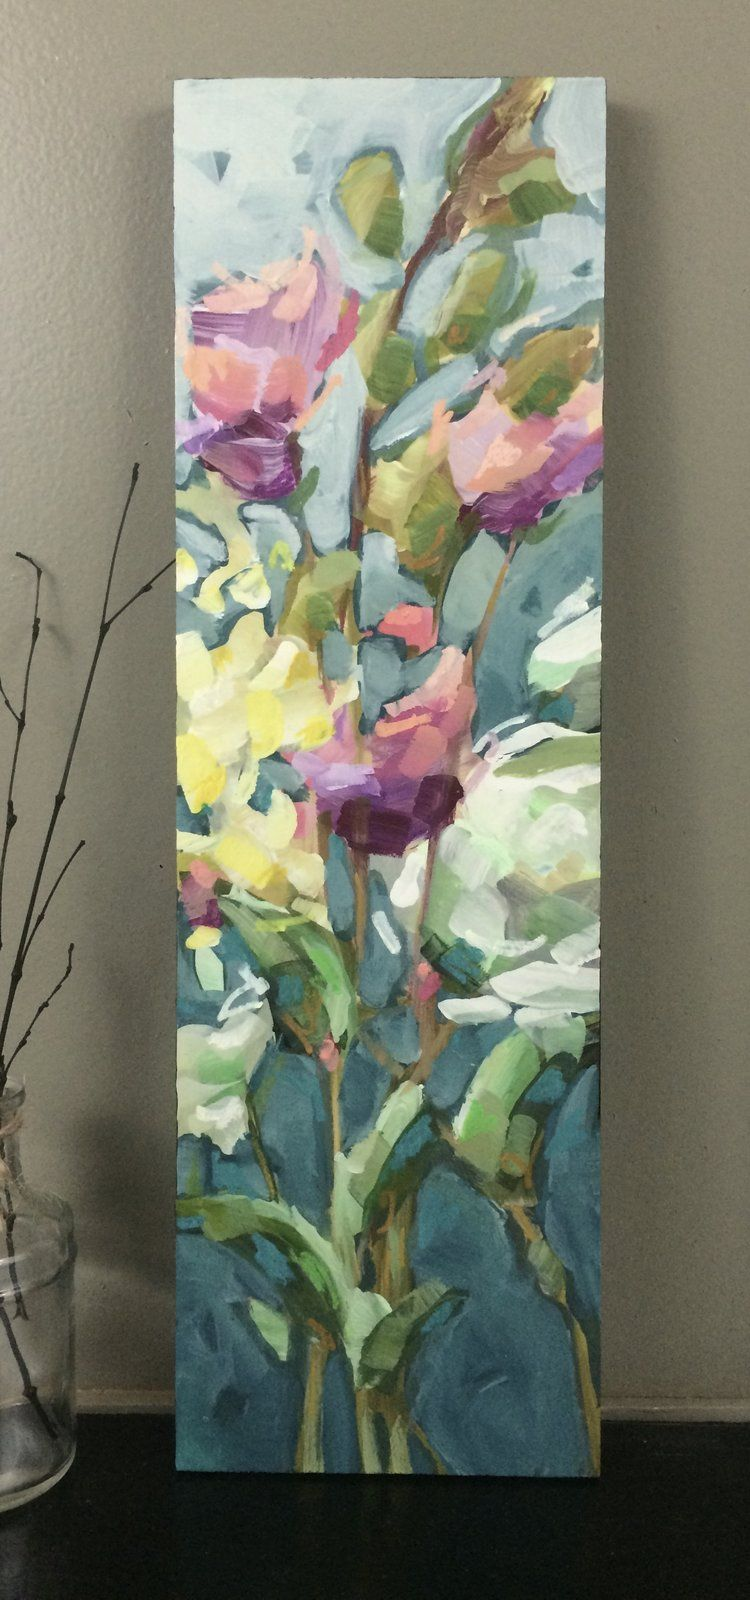 wwwvansickleartcom Love this painting The colors the